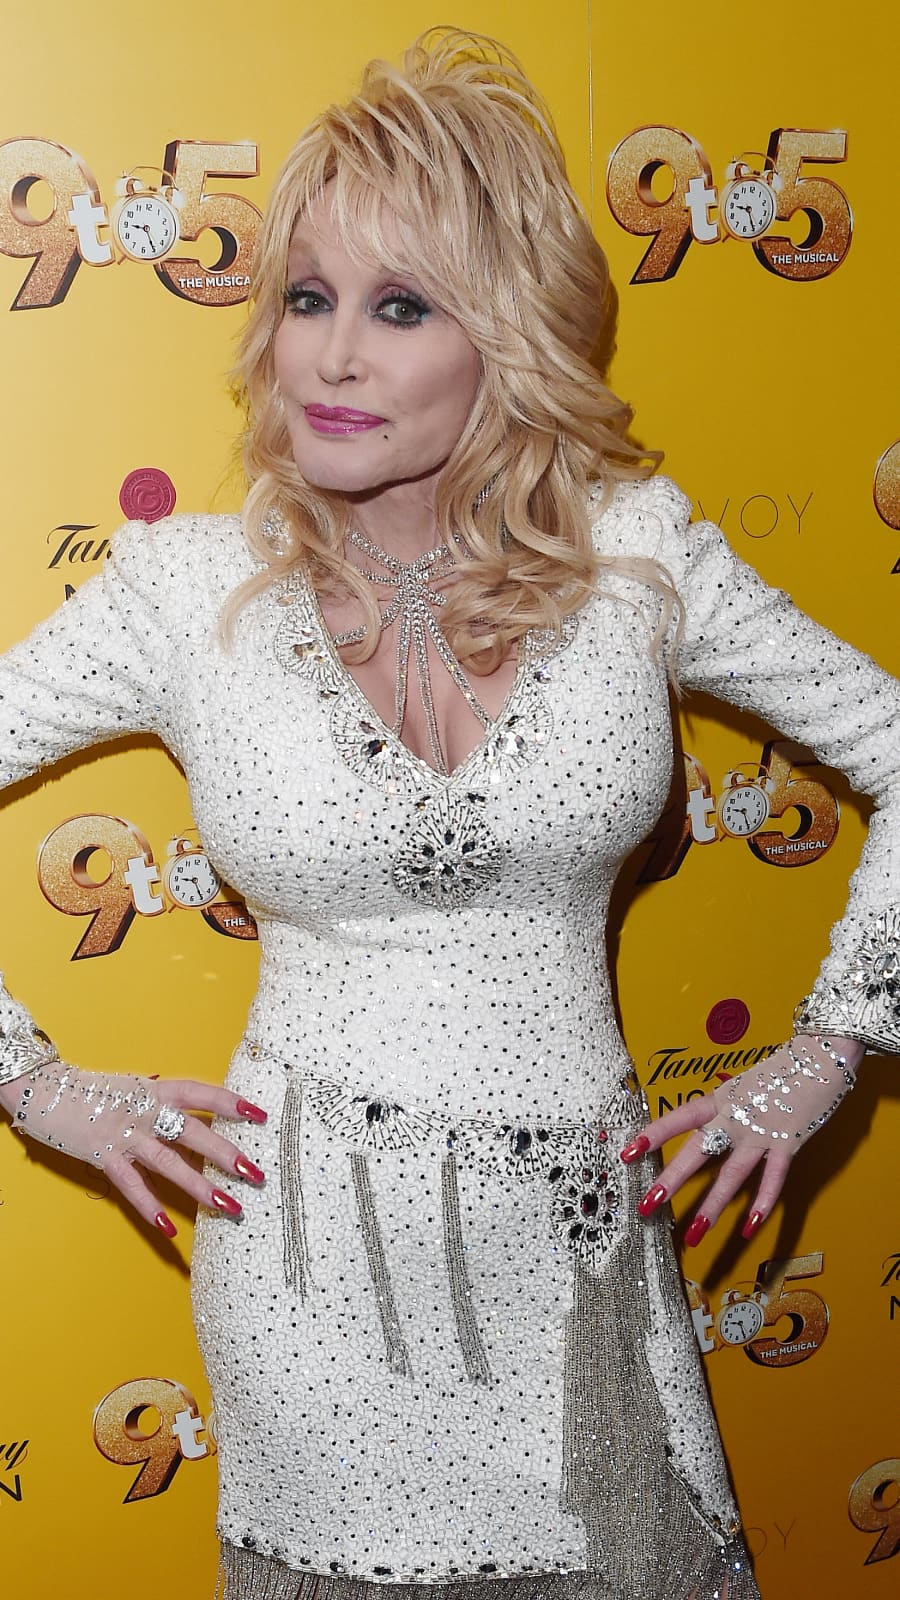 Dolly Parton Talks About The Reason Behind Her Tattoos